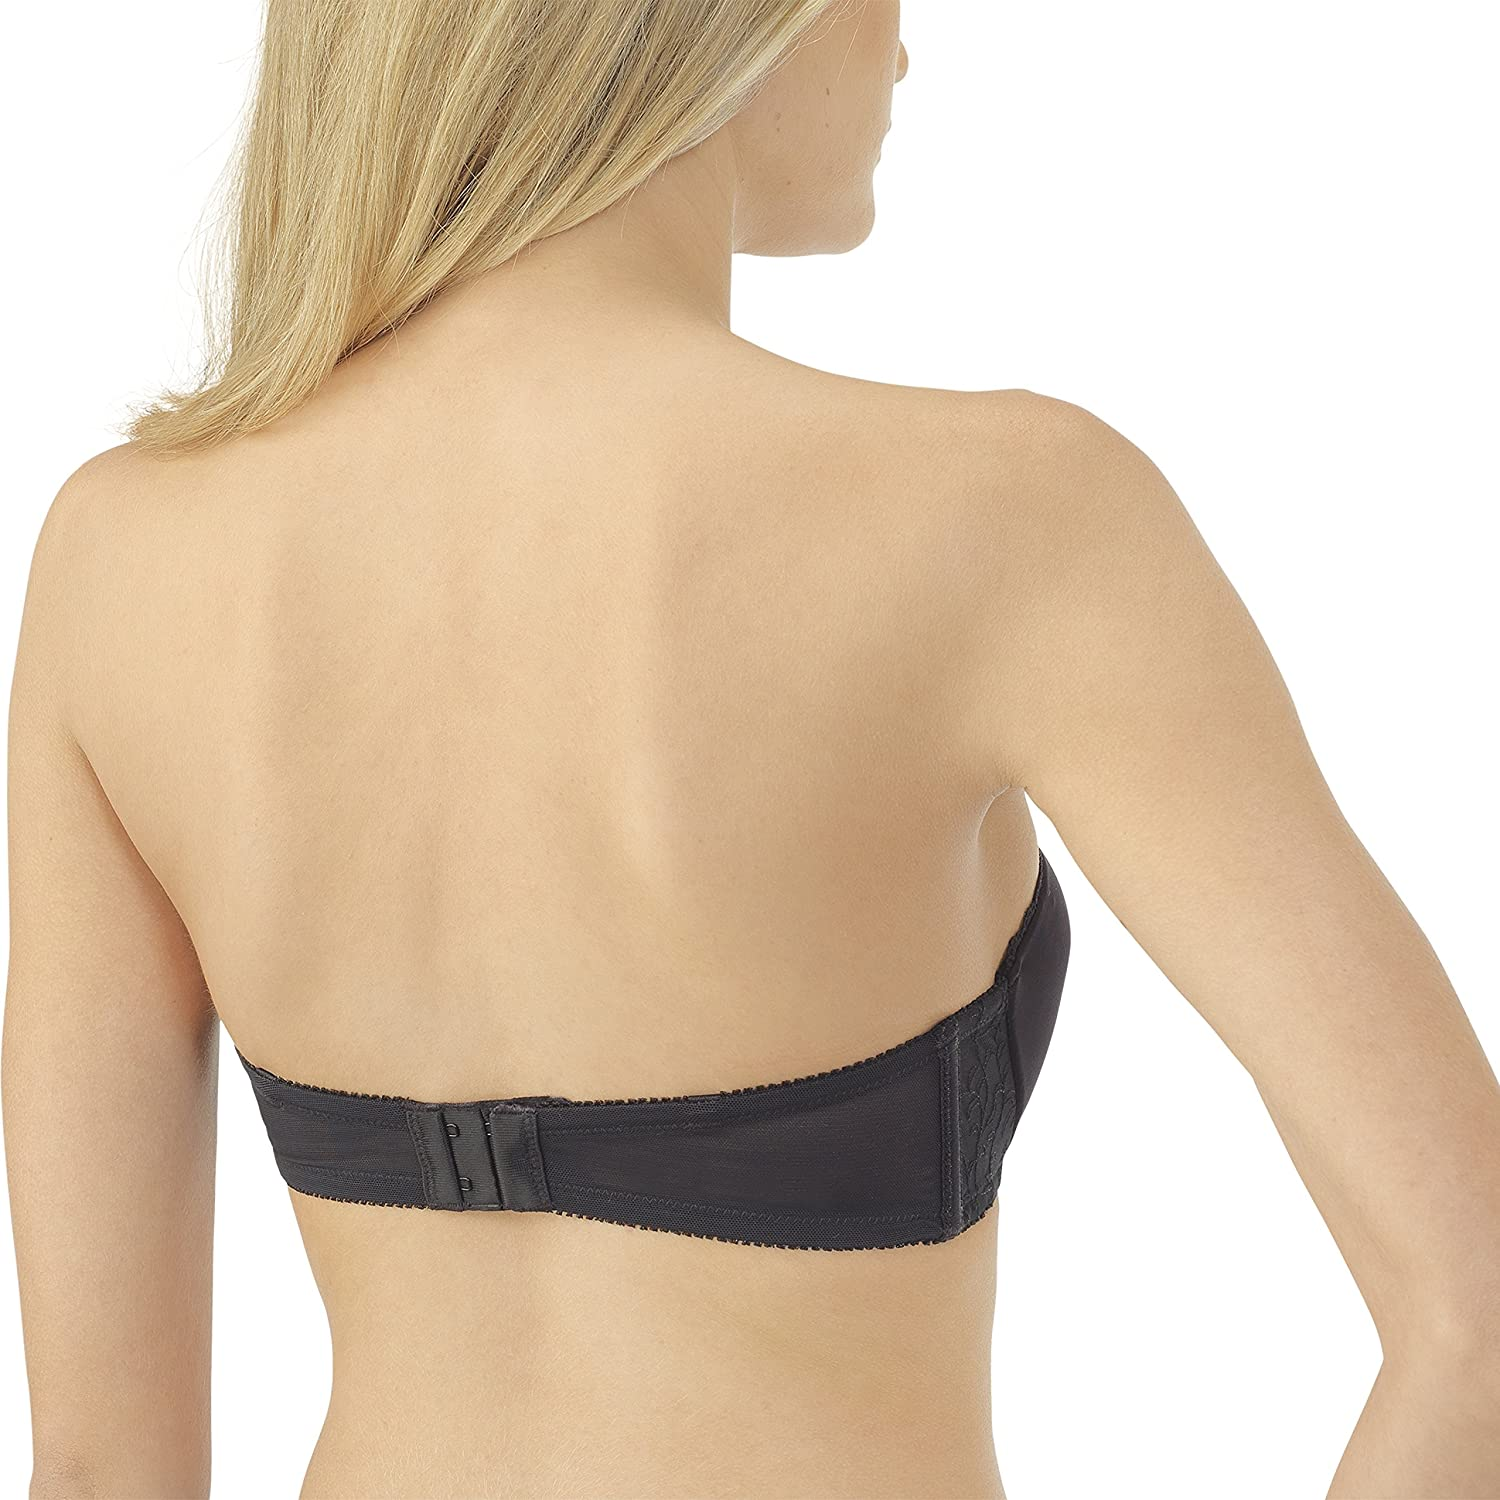 41c24e8b2a5 Lily Of France Women s Gel Touch Strapless Push Up Bra 2111121  Amazon.ca   Clothing   Accessories